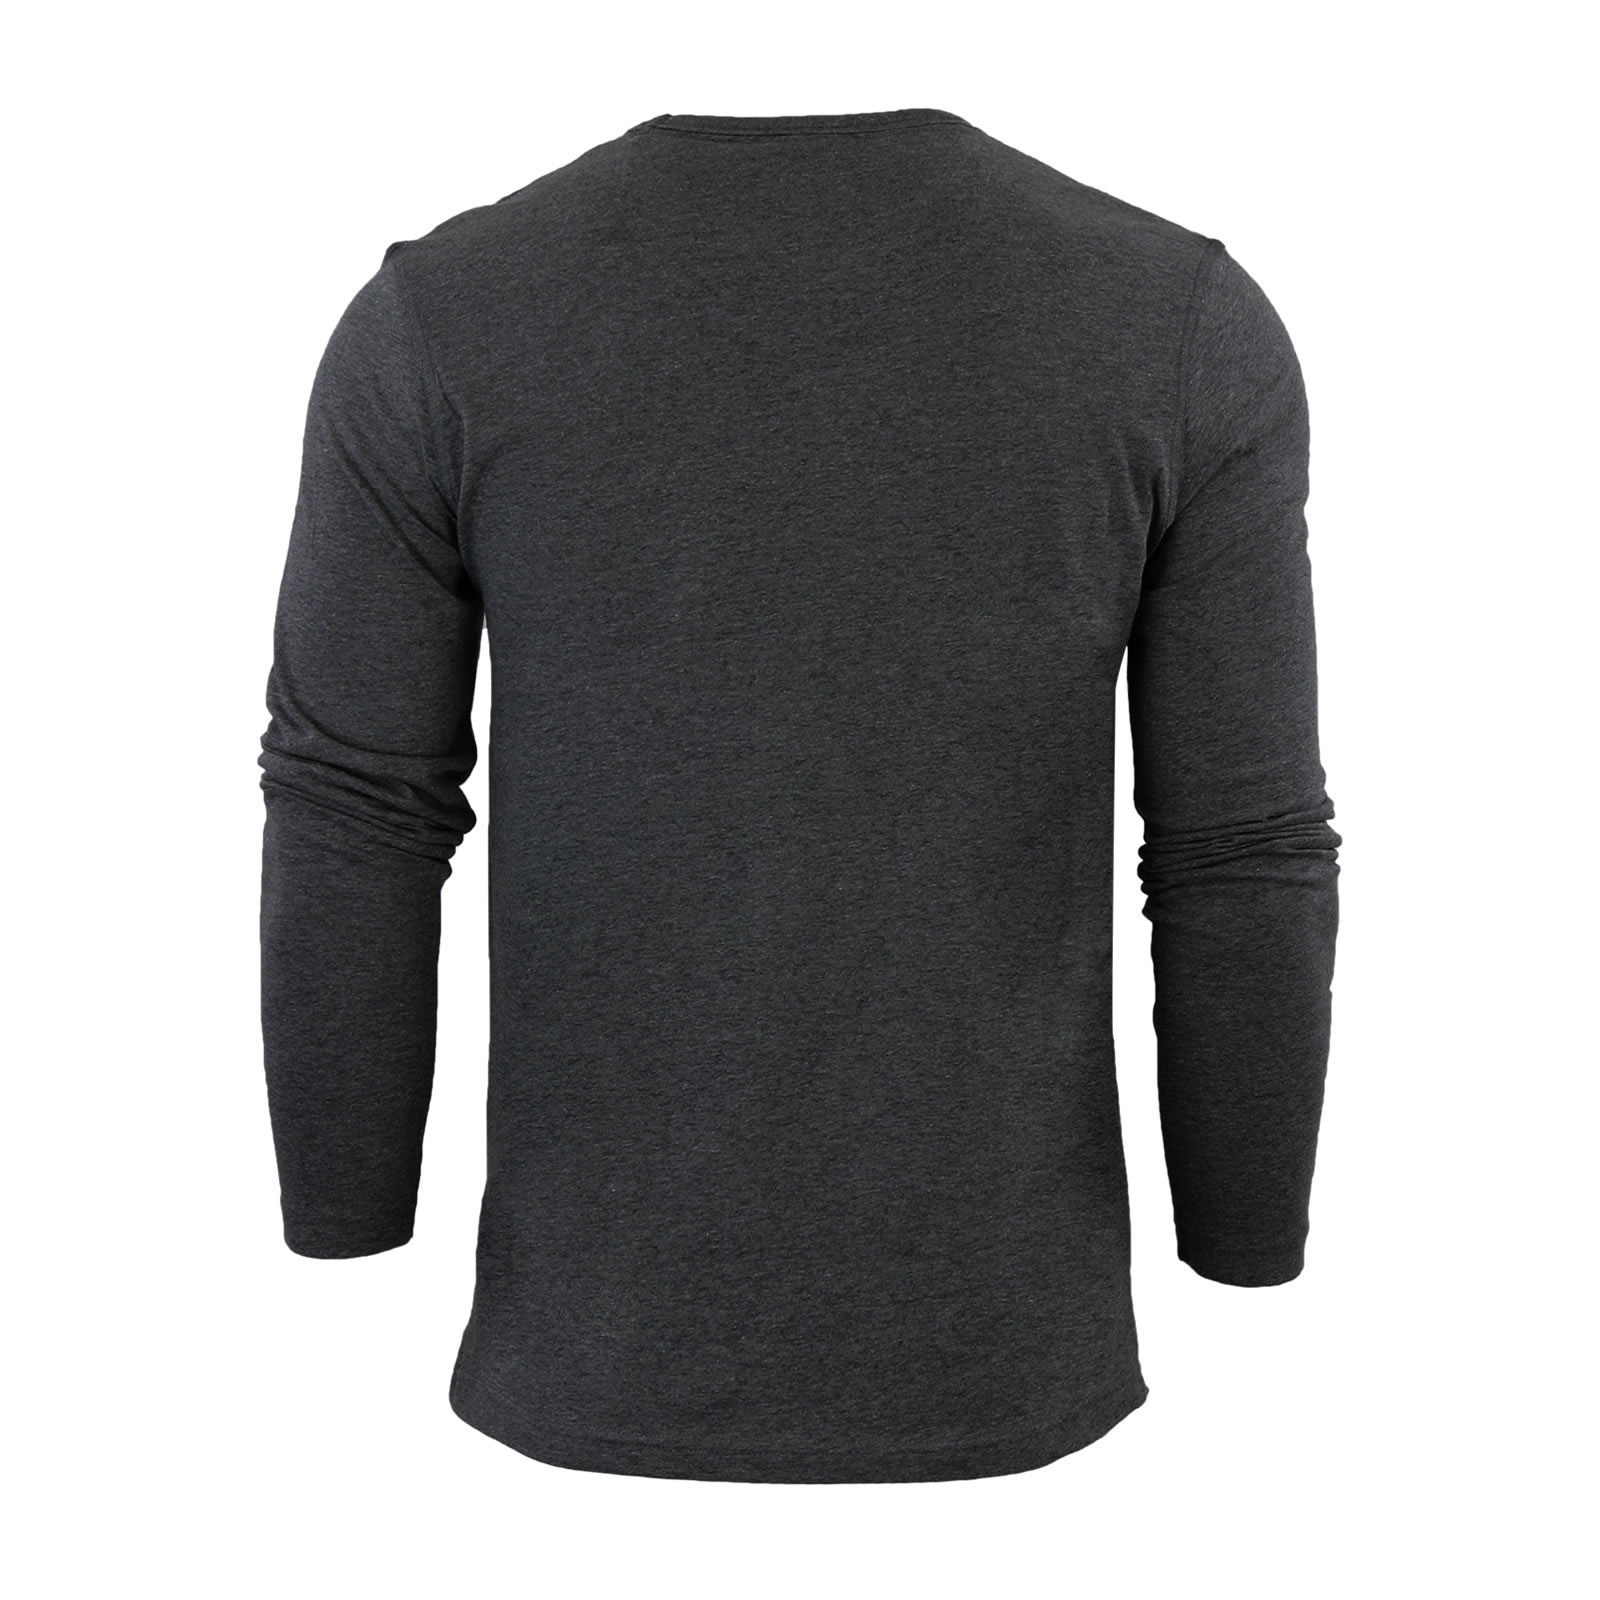 Mens-T-Shirt-by-Brave-Soul-Prague-Cotton-Long-Sleeved-Crew-Neck-Casual-Top thumbnail 6